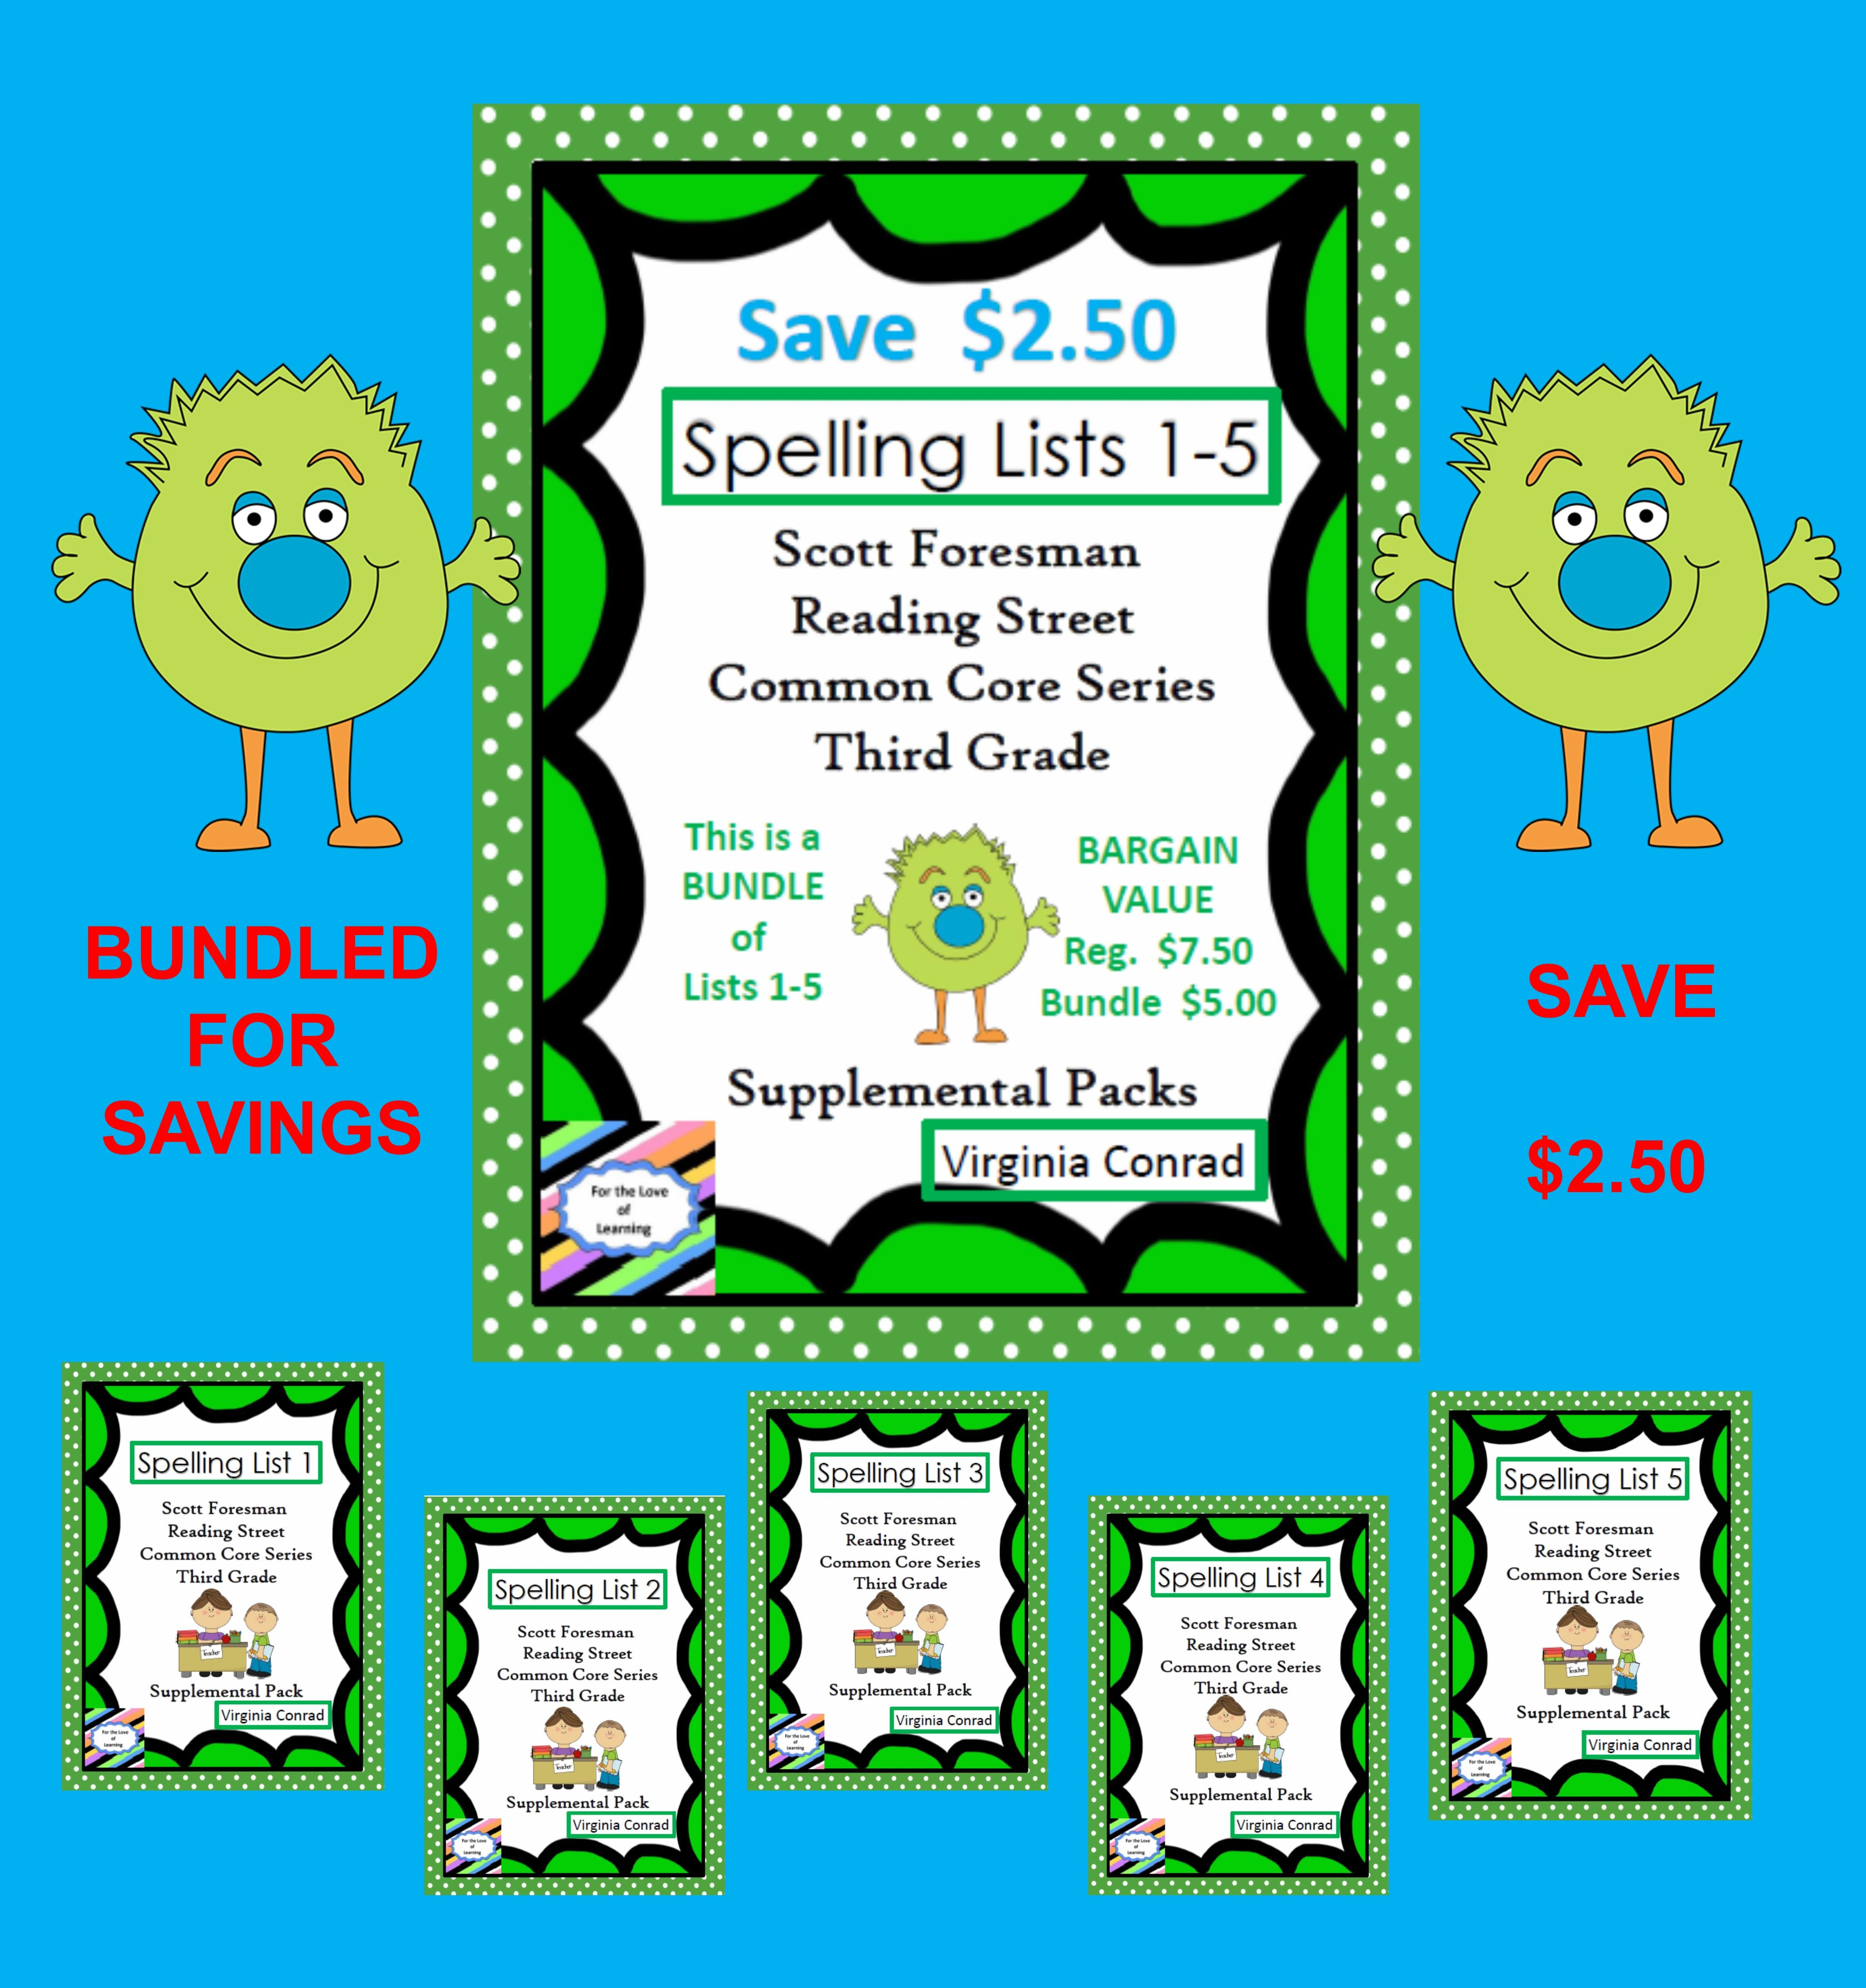 Reading Street Supplemental Packets For Spelling Lists 1